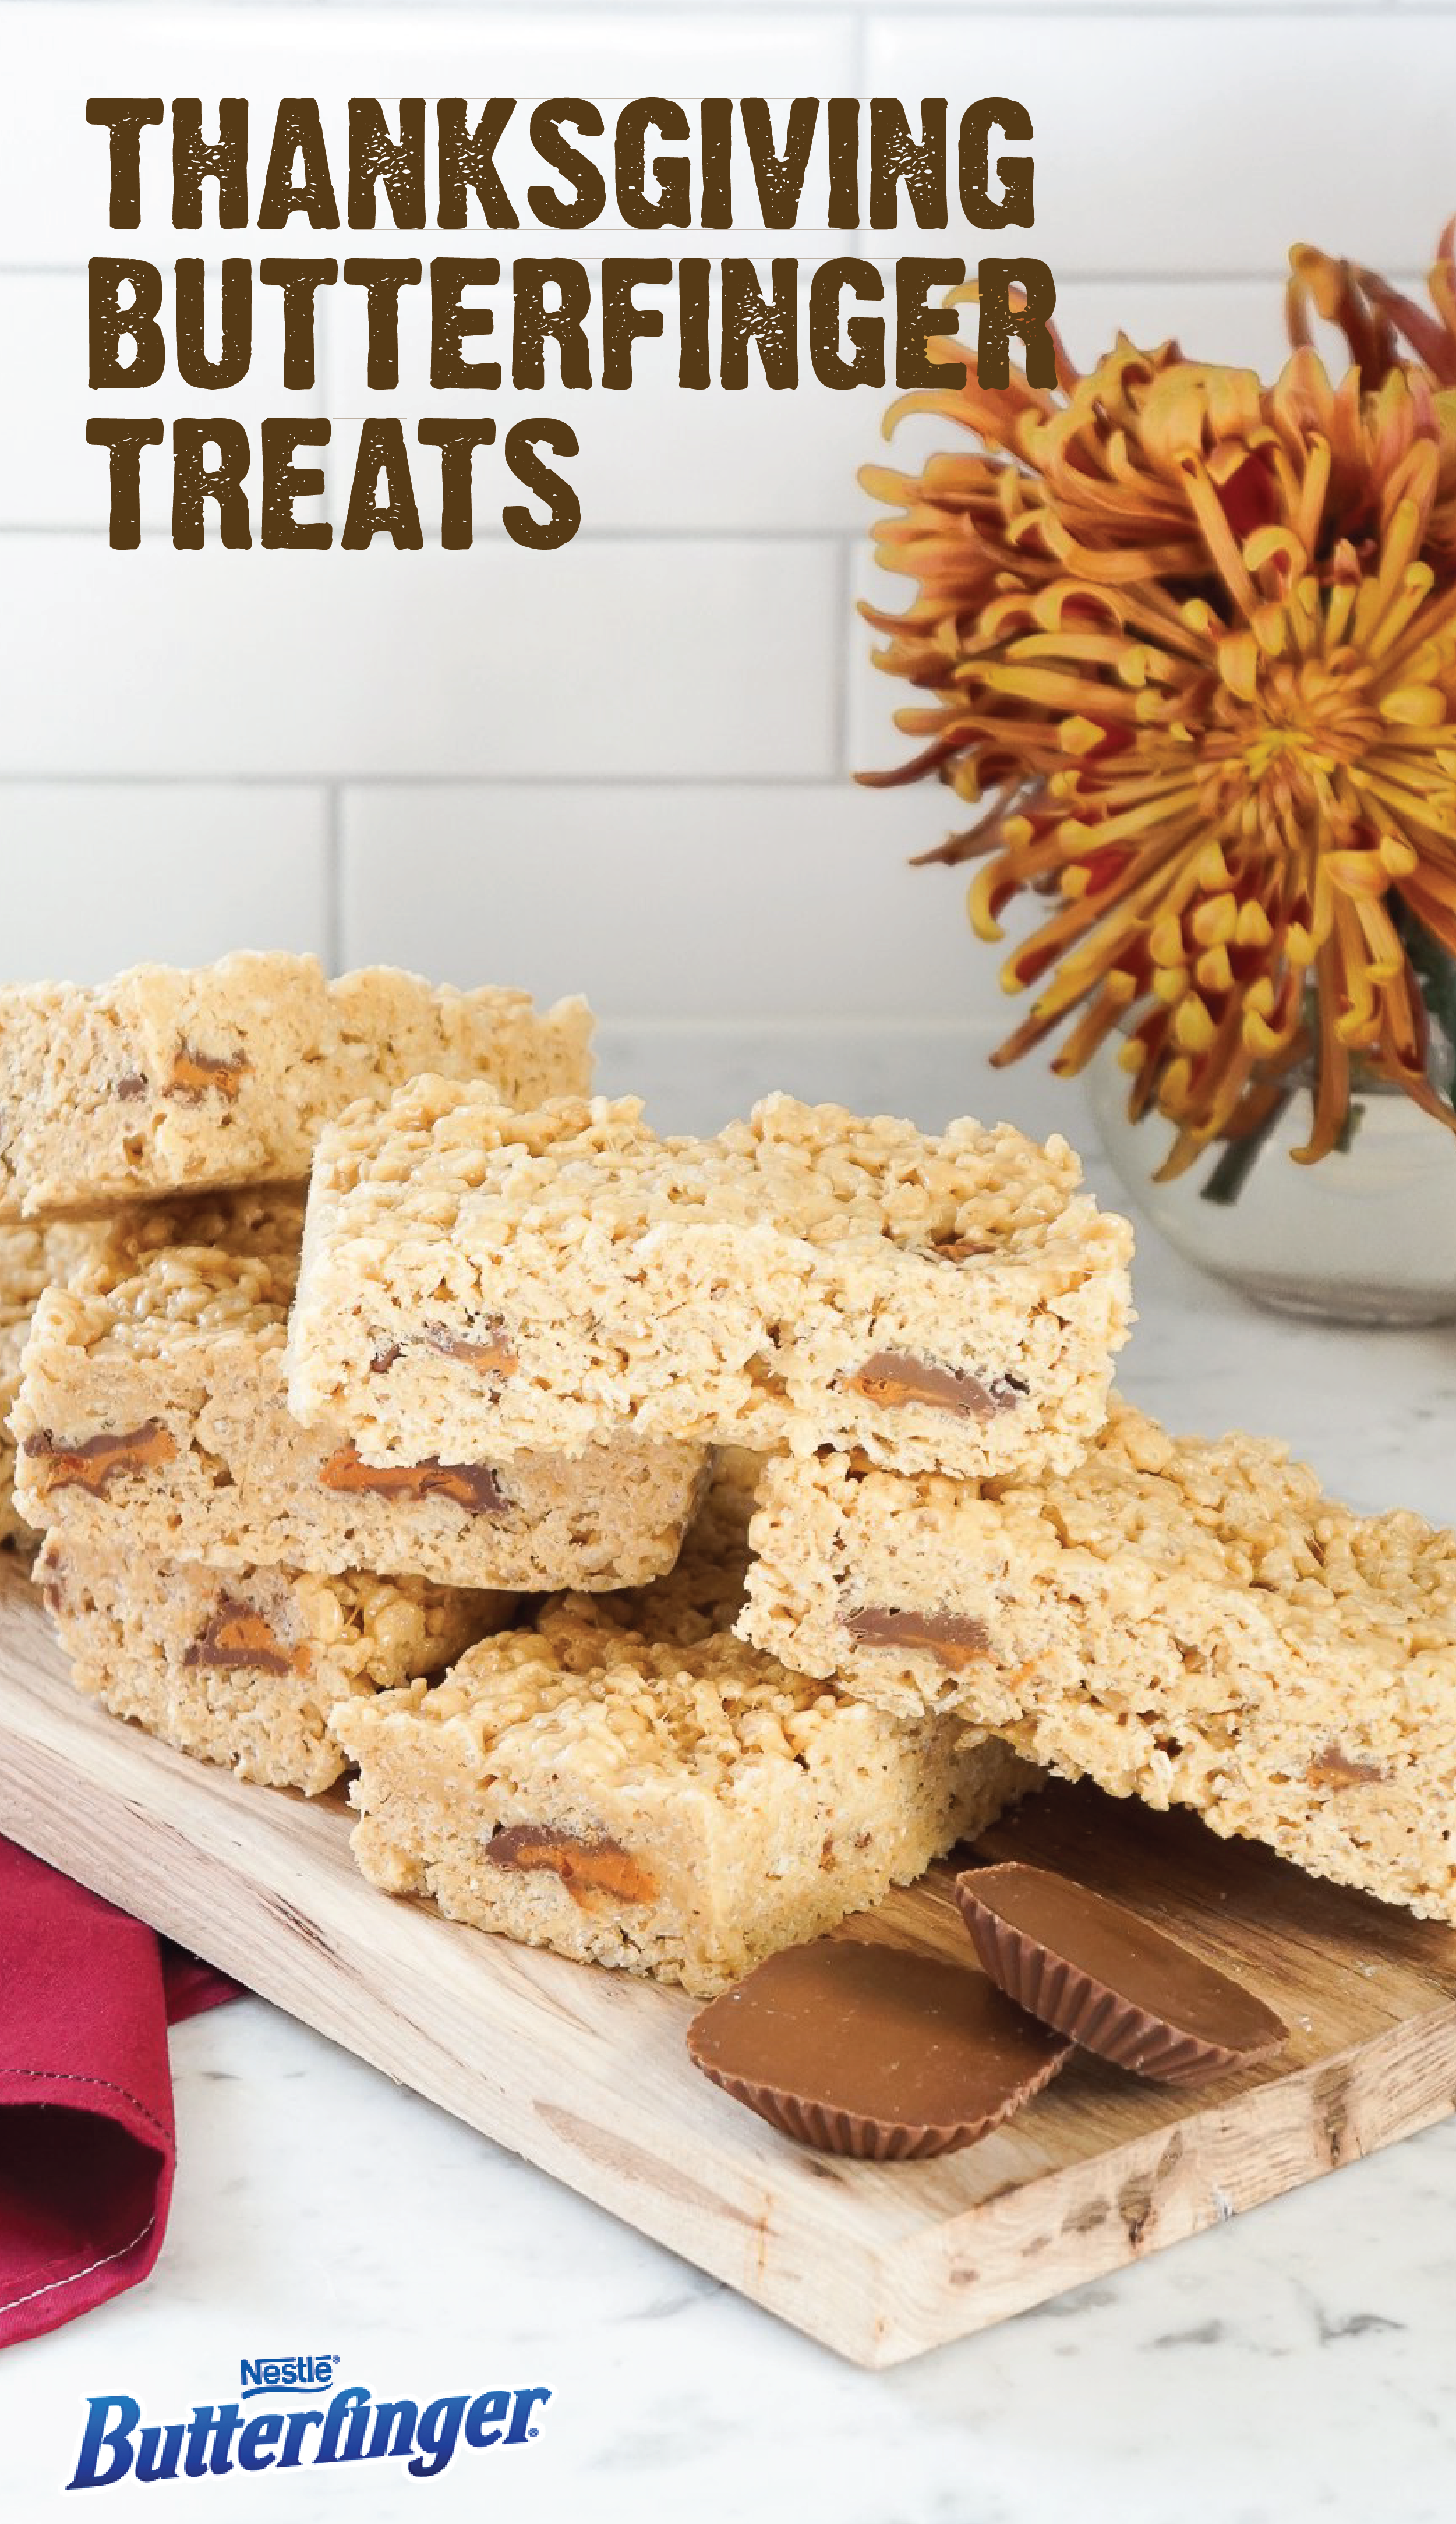 3 tips for throwing a festive friendsgiving gathering your holiday party wouldnt be complete without these thanksgiving butterfinger treats the combination ccuart Choice Image